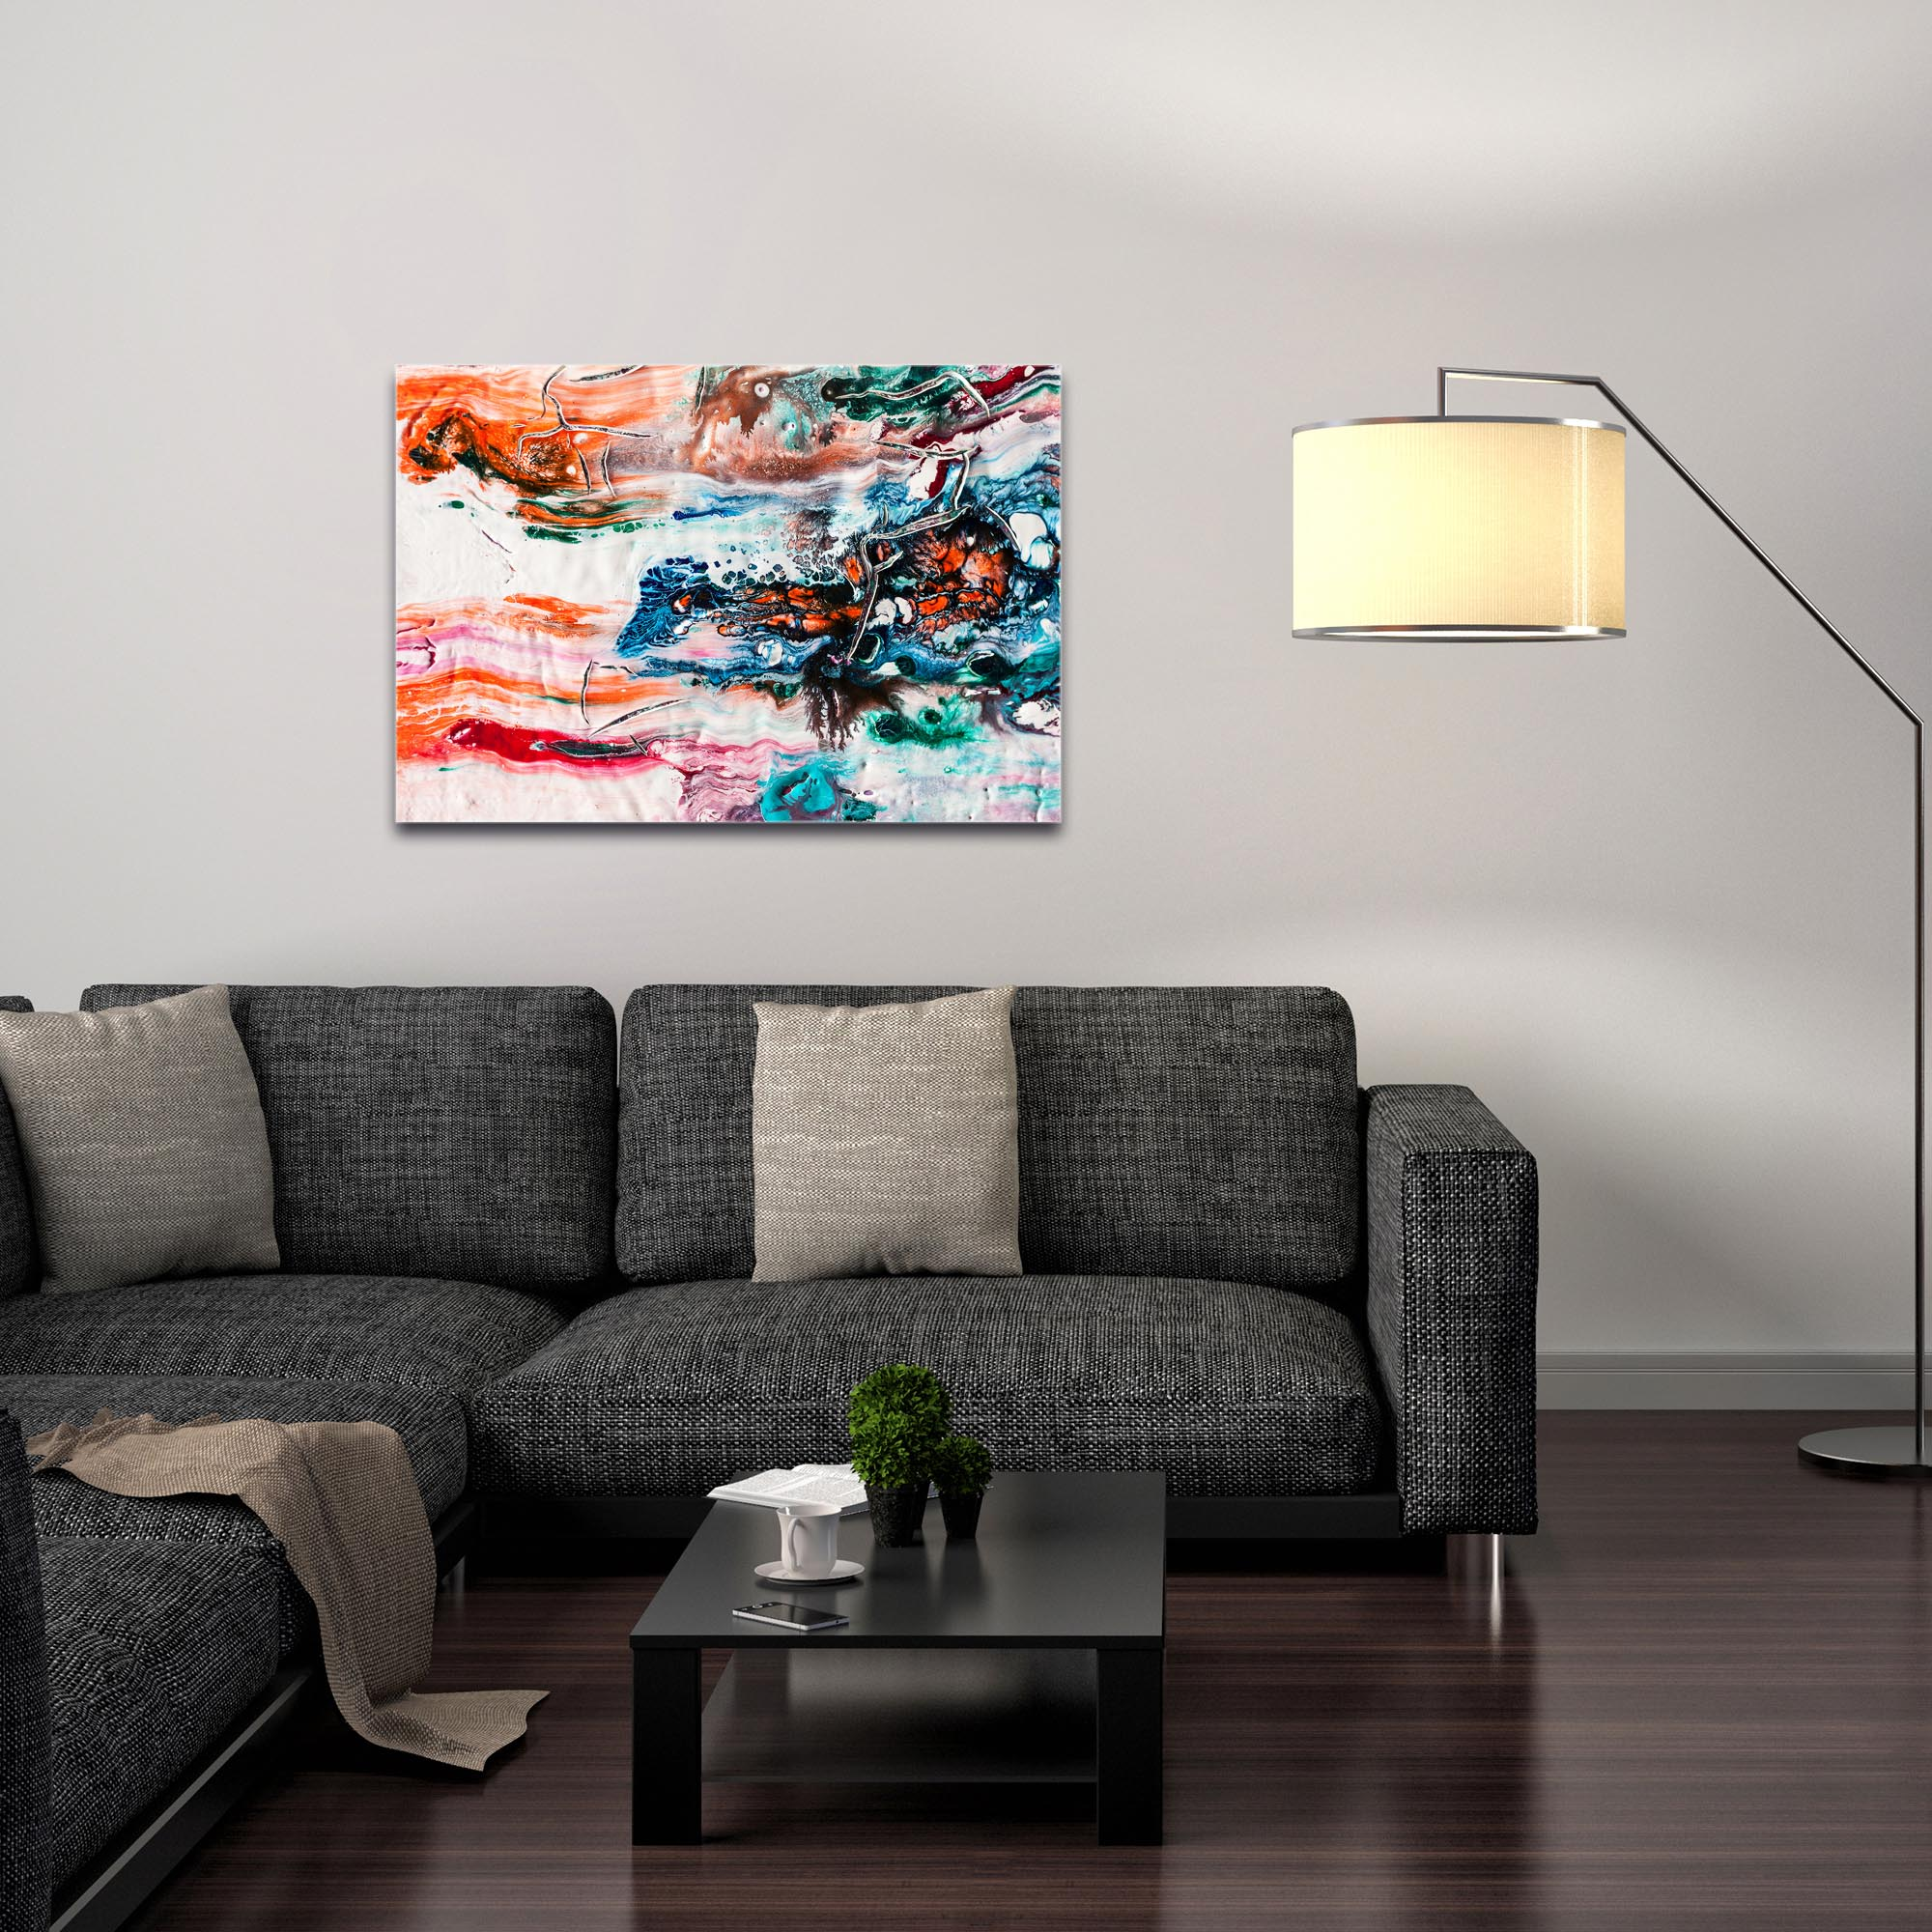 Abstract Wall Art 'Sunset on Her Breath 1' - Colorful Urban Decor on Metal or Plexiglass - Image 3